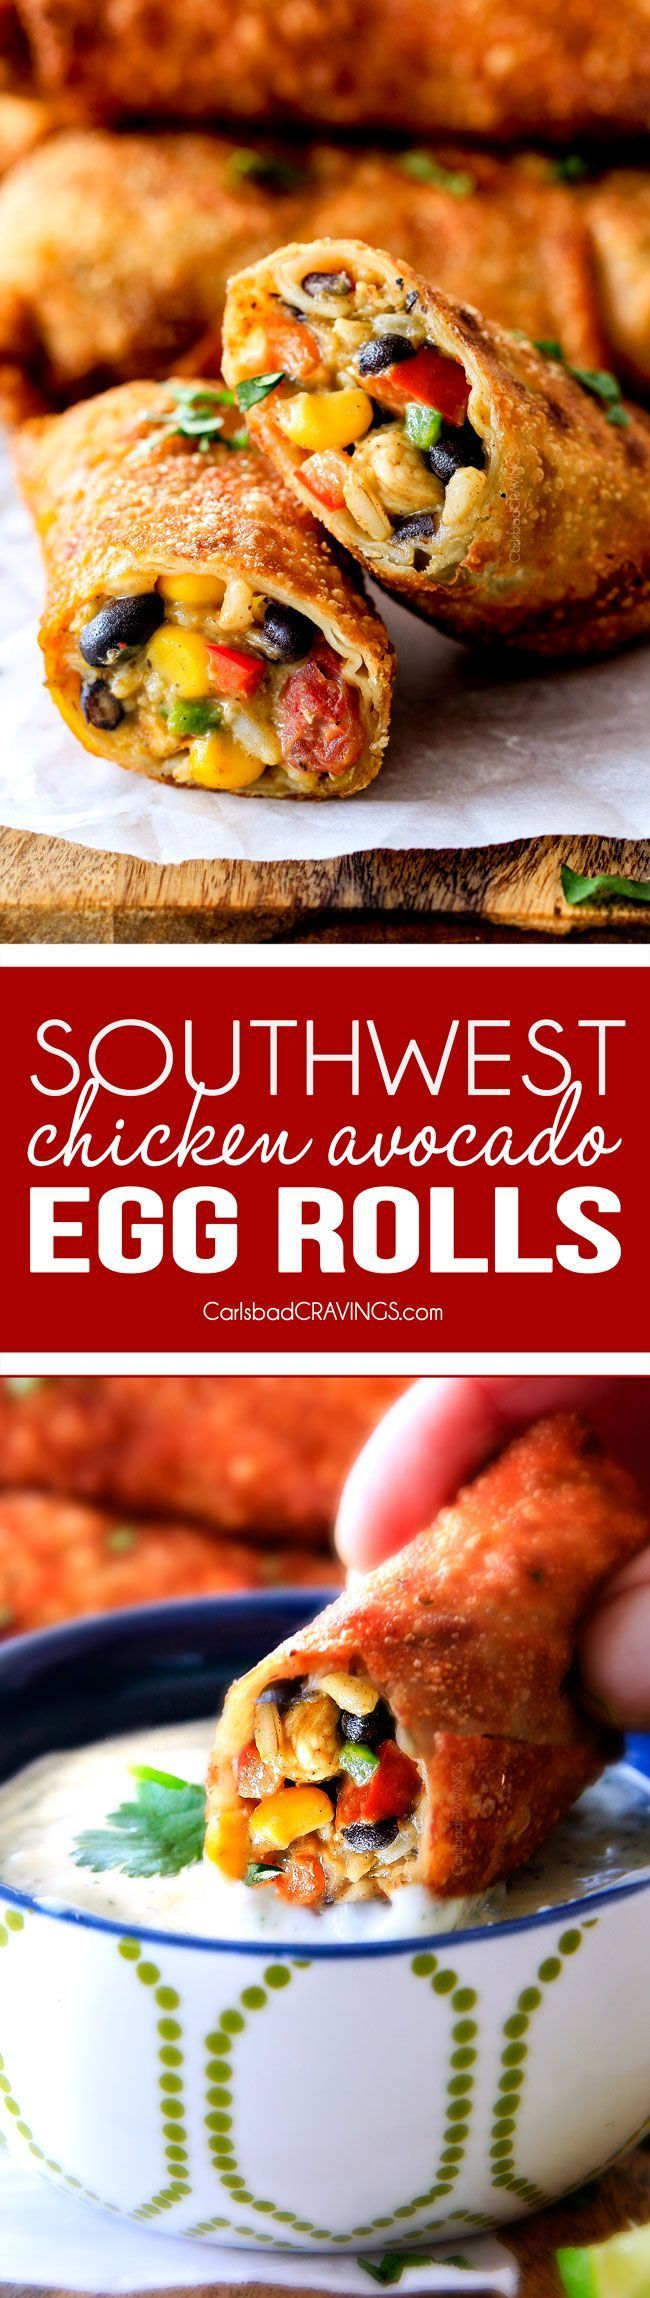 CRISPY Southwest Egg Rolls loaded with Mexican spiced chicken, beans, tomatoes, rice, avocado and cheese! These eggrolls are unreal! So much flavor and texture! And don't skip the Cilantro Lime Ranch